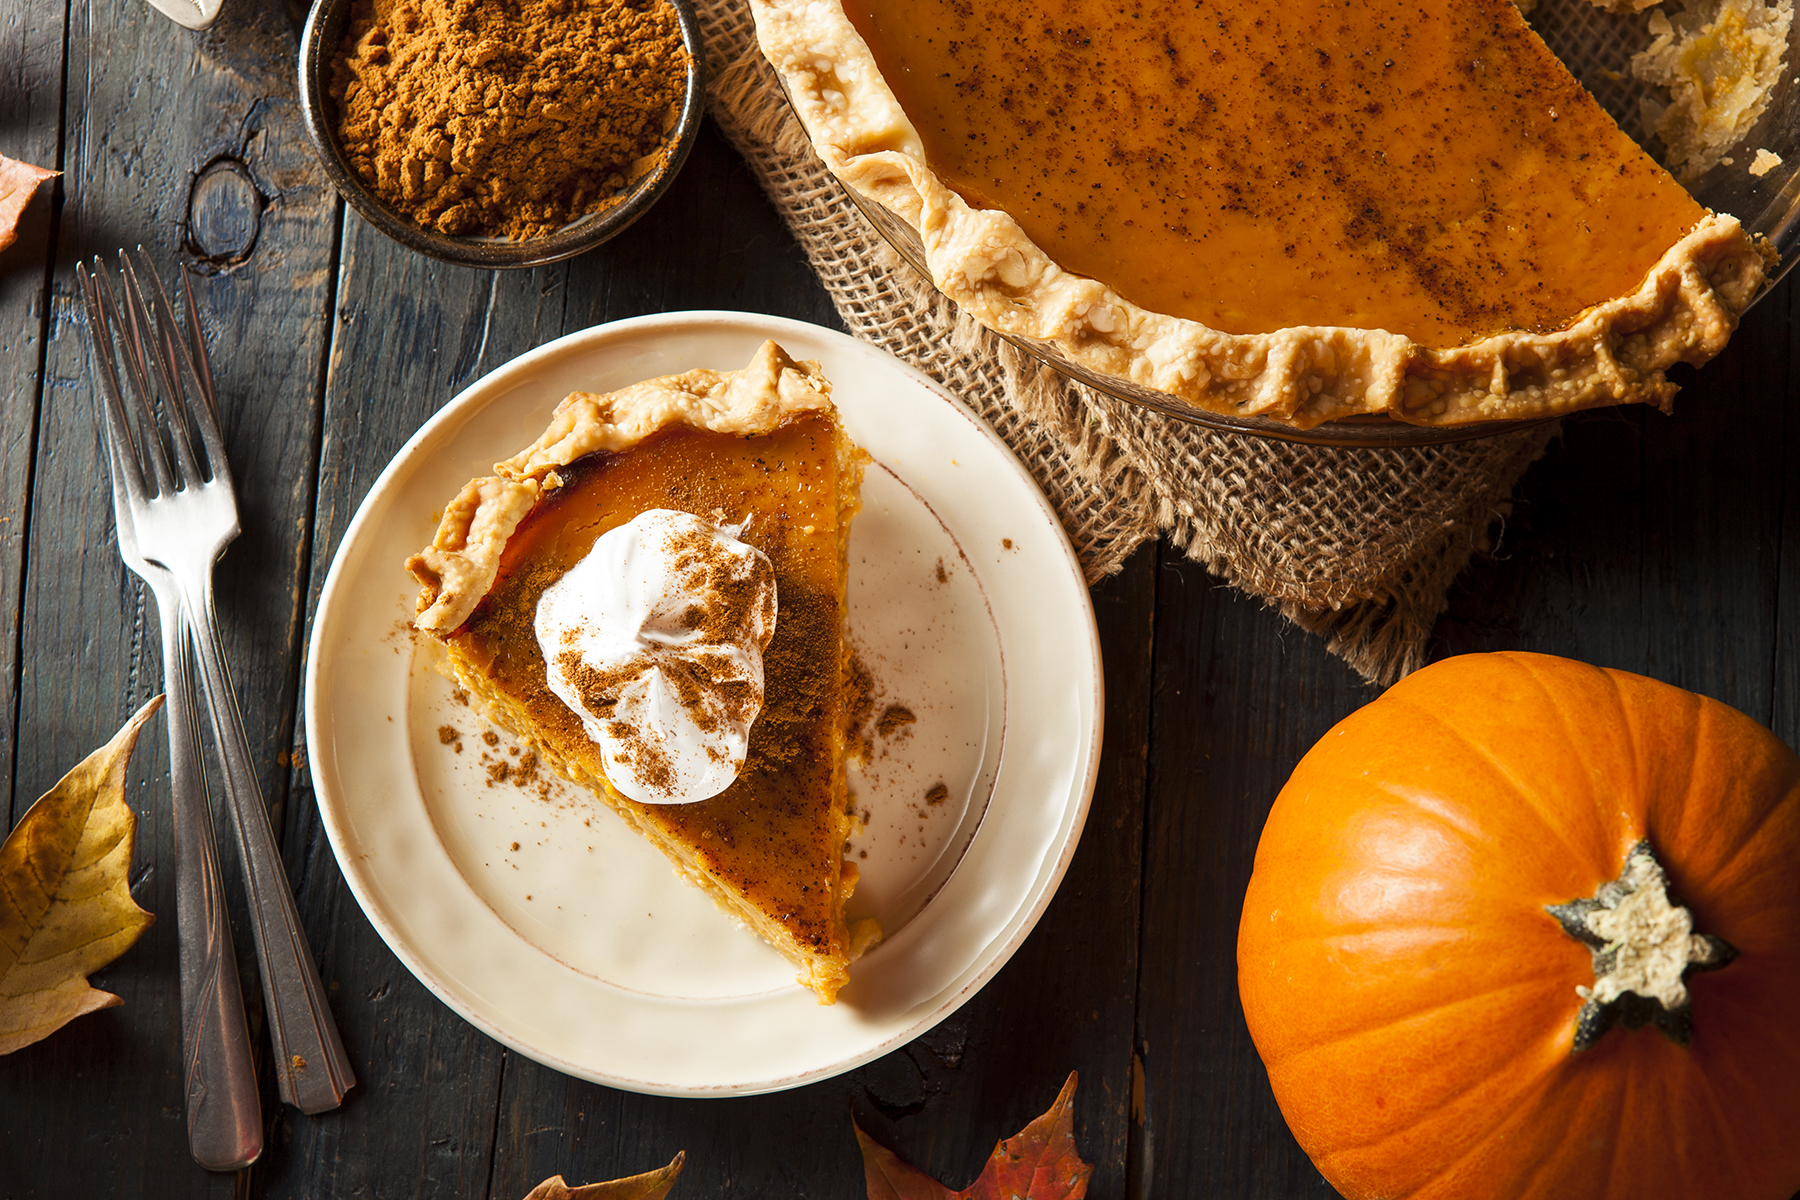 Can You Freeze Pumpkin Pie and Do You Need to Refrigerate It?